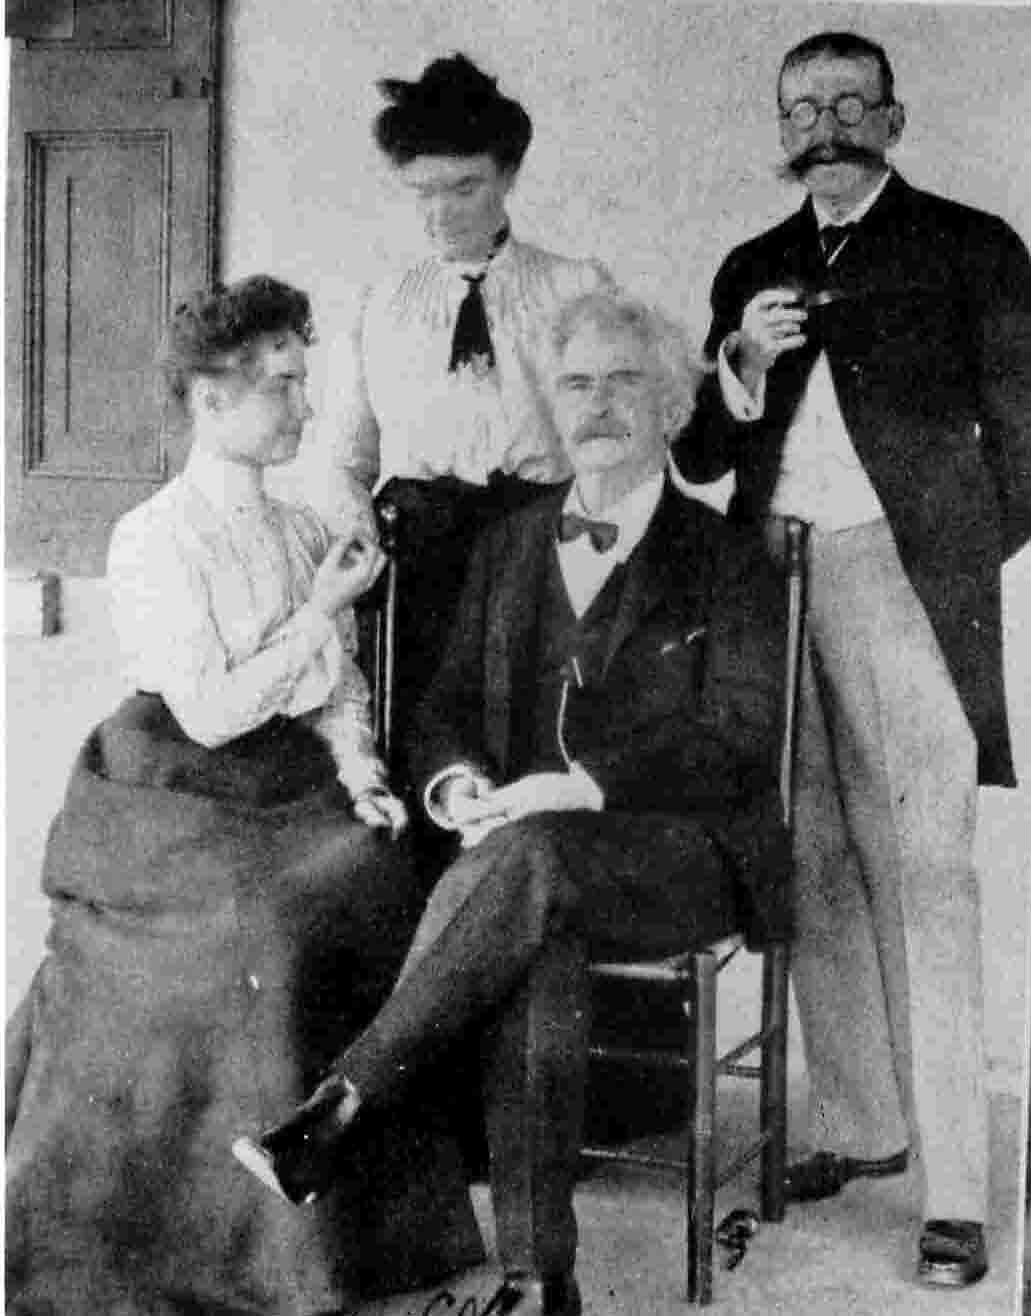 a discussion of whether mark twain was a racist or realist Realism from 1977-1984, and continued in the mark twain circular before moving to the mark twain journal with the issue for spring 1997 'if you know the worst about a candidate to be- gin with, every attempt to spring things  conclusion that the average of mark twain's work between 1897 and 1910 matched the.